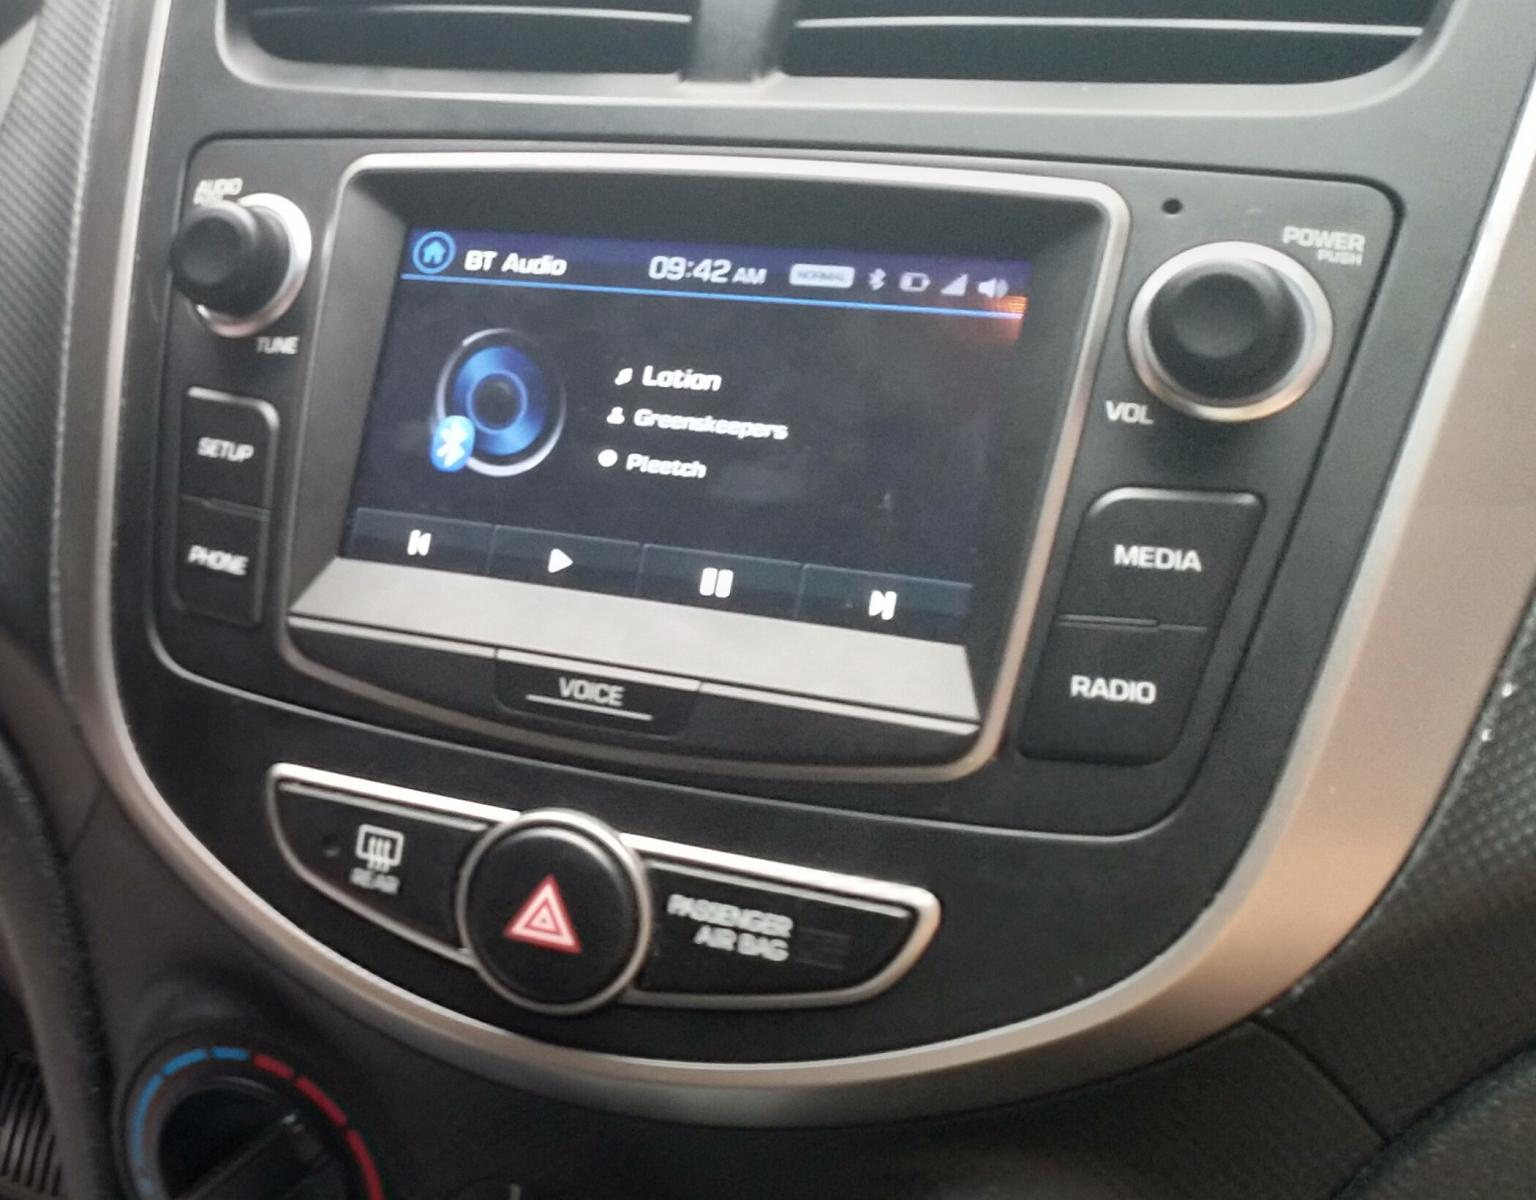 2017 Hyundai Accent Radio Wiring Diagram